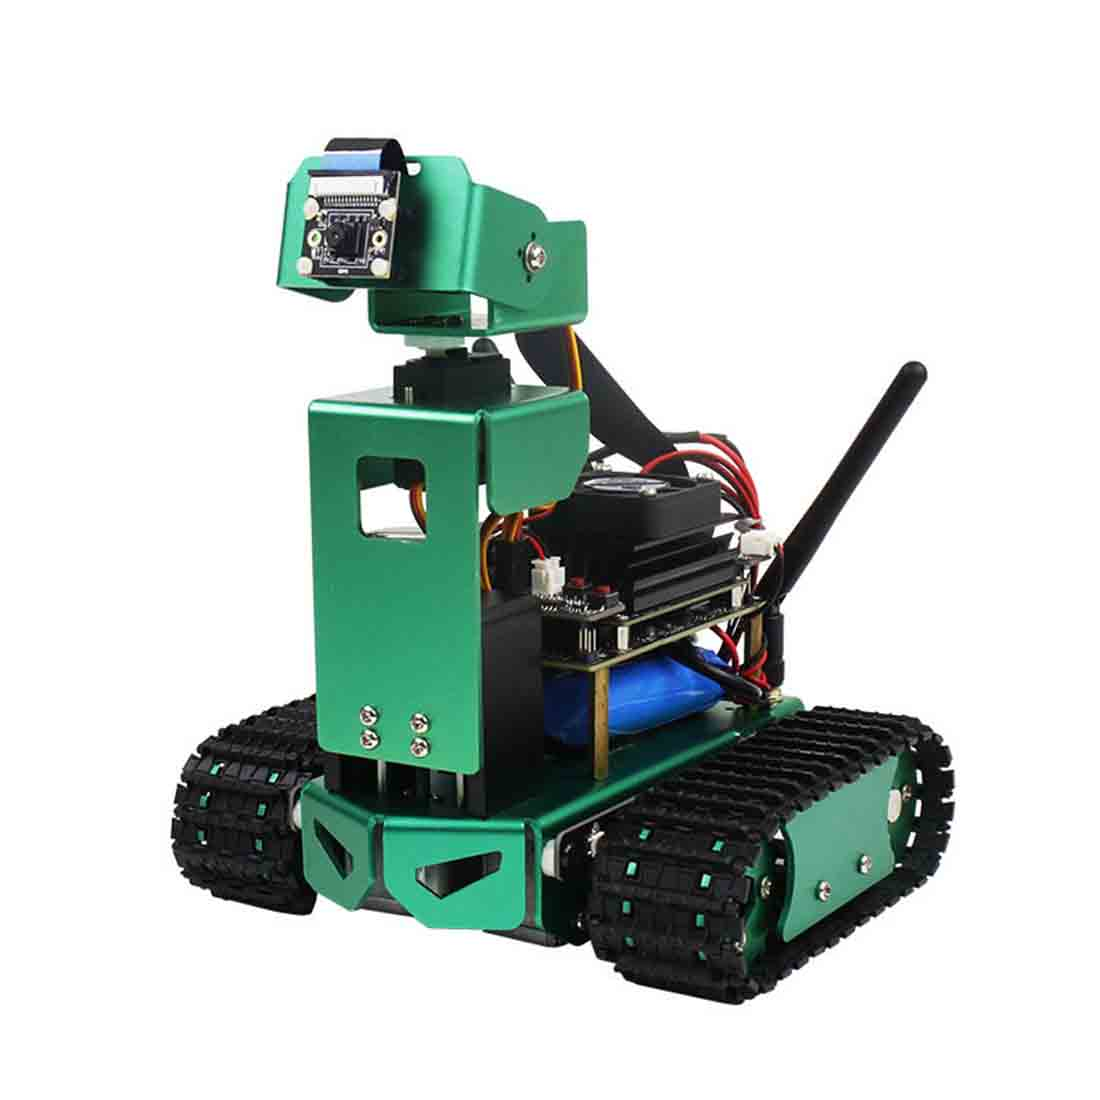 Artificial Intelligence Car DIY 3DOF Robot Car Kit With /without  Development Board For Jetson Nano (Adjustable Height)